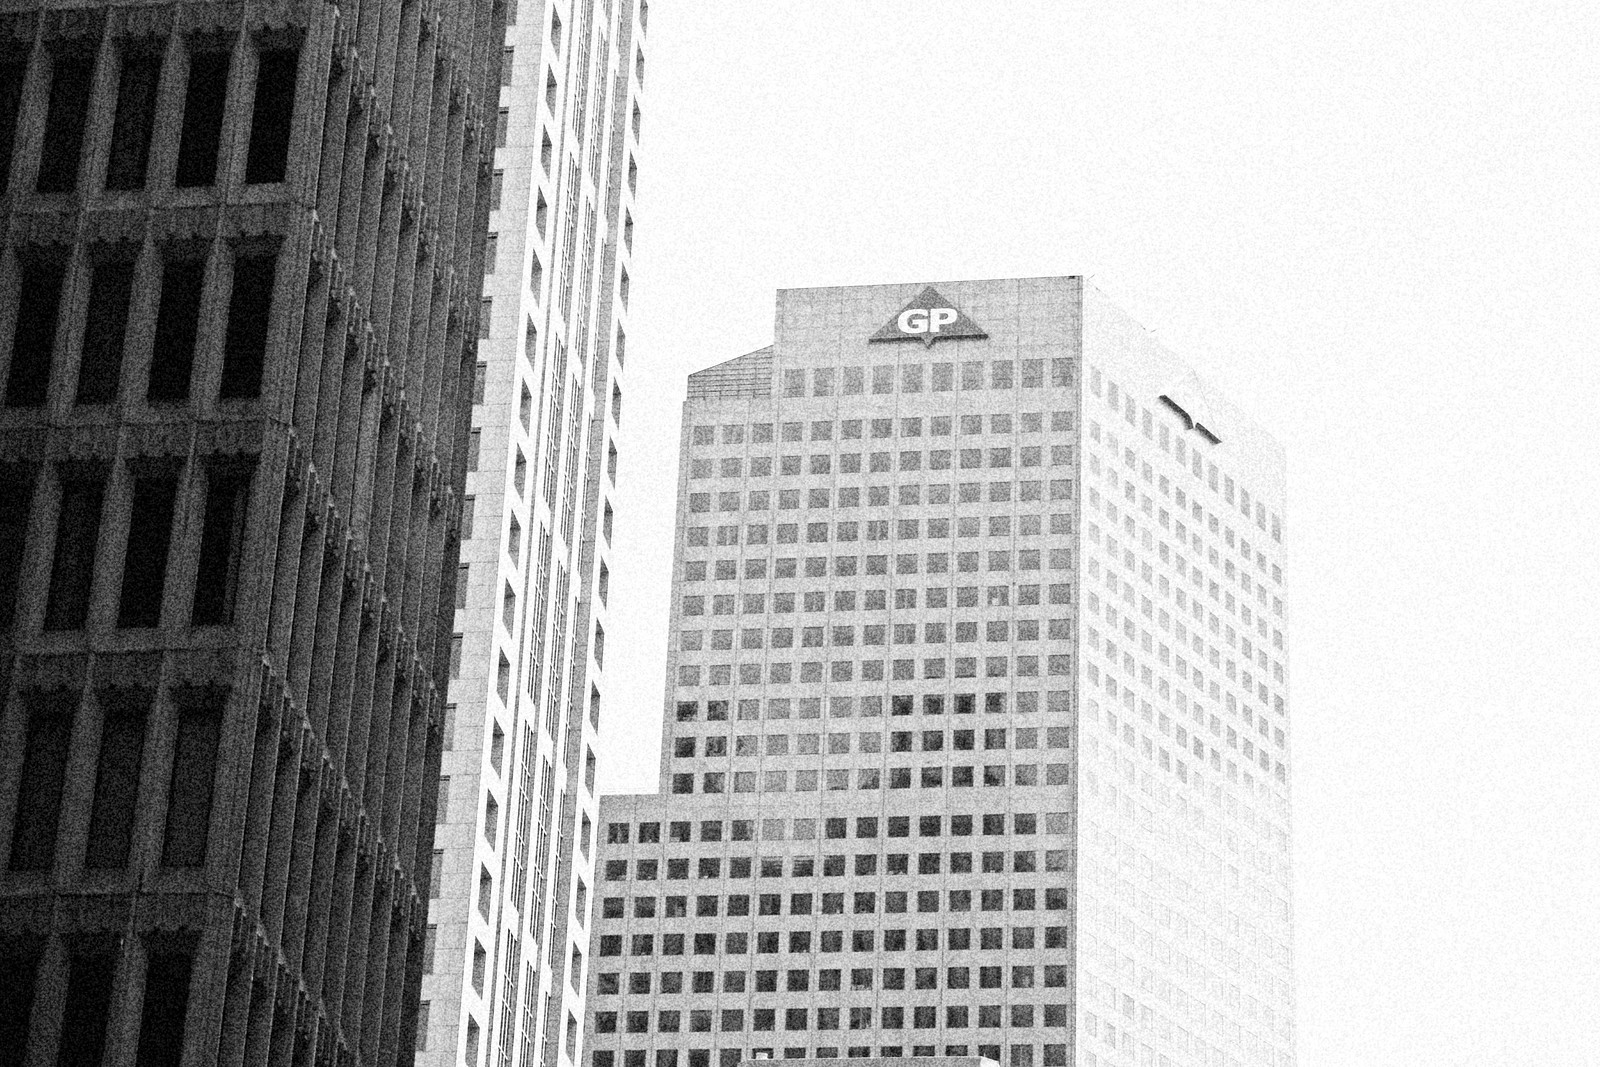 Bank of America Plaza, 191 Peachtree Center Tower, Georgia Pacific Building, Downtown Atlanta